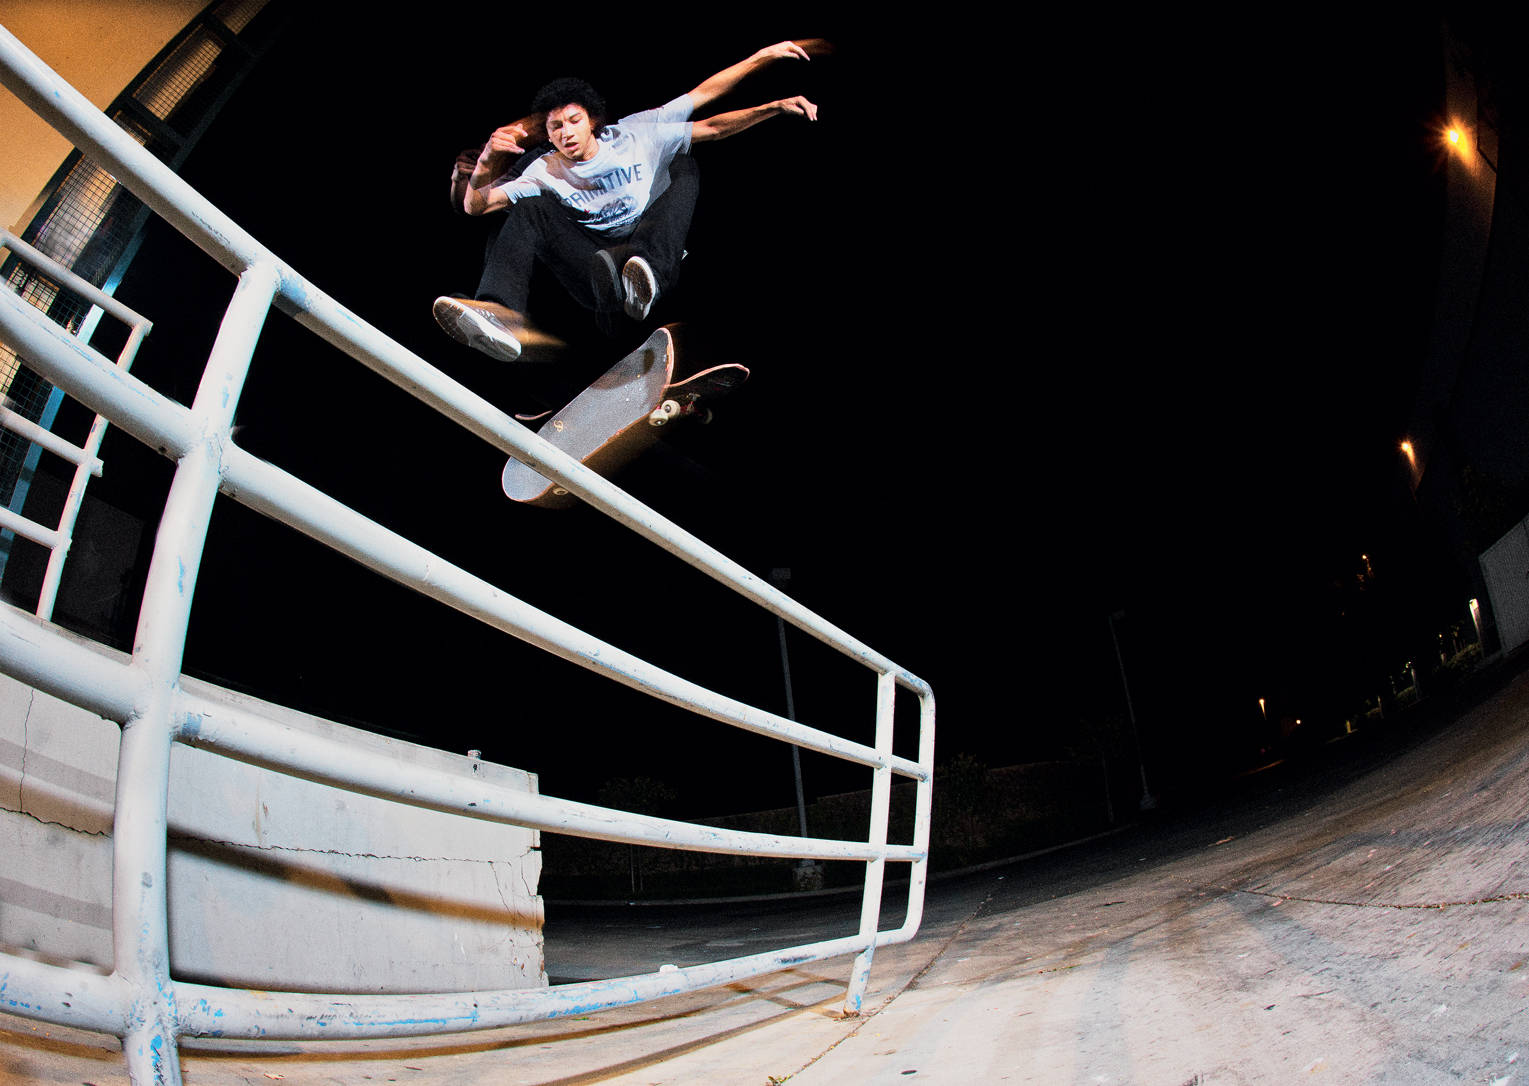 NICK TUCKER PROFILE -- From The Skateboard Mag Issue 133